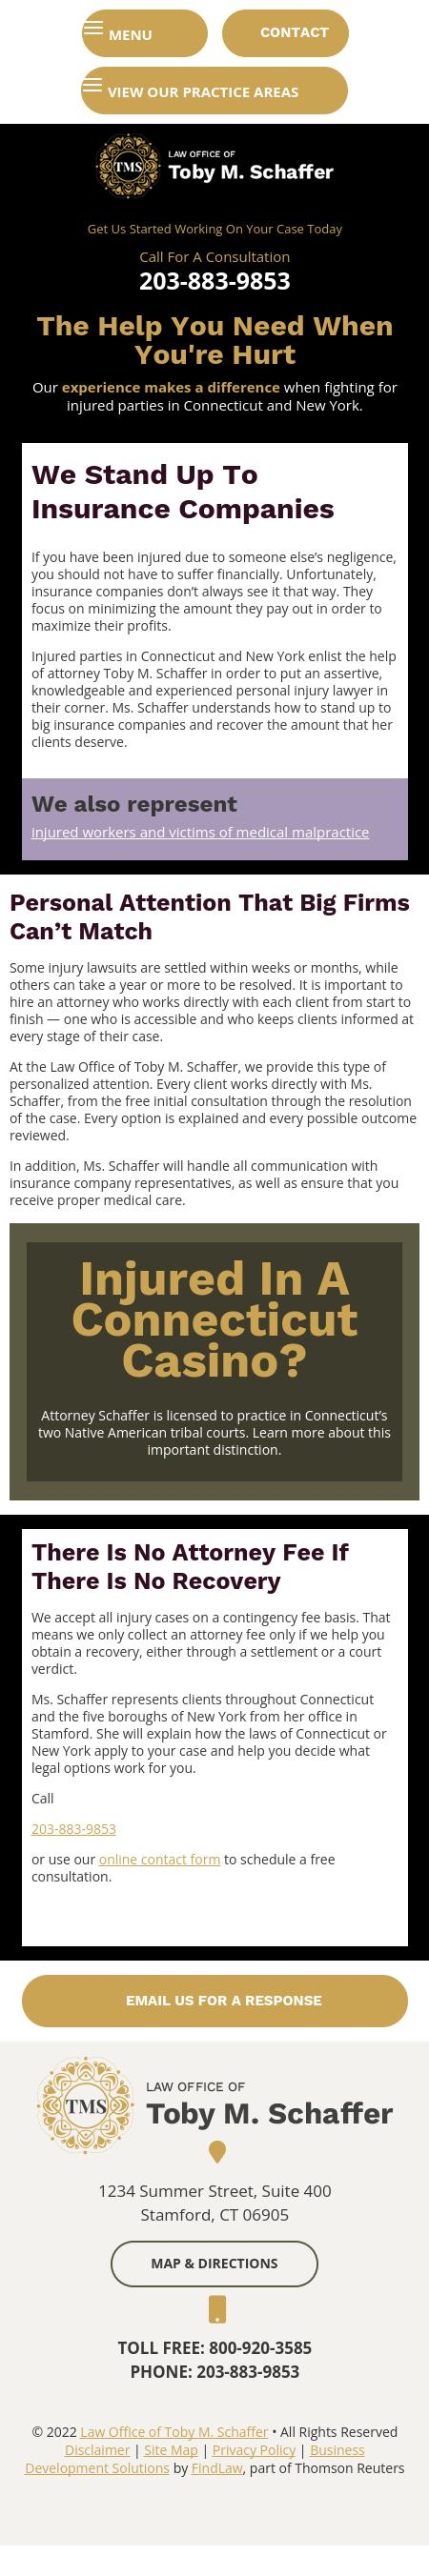 Law Office of Toby M. Schaffer | Stamford CT Law | LawyerLand